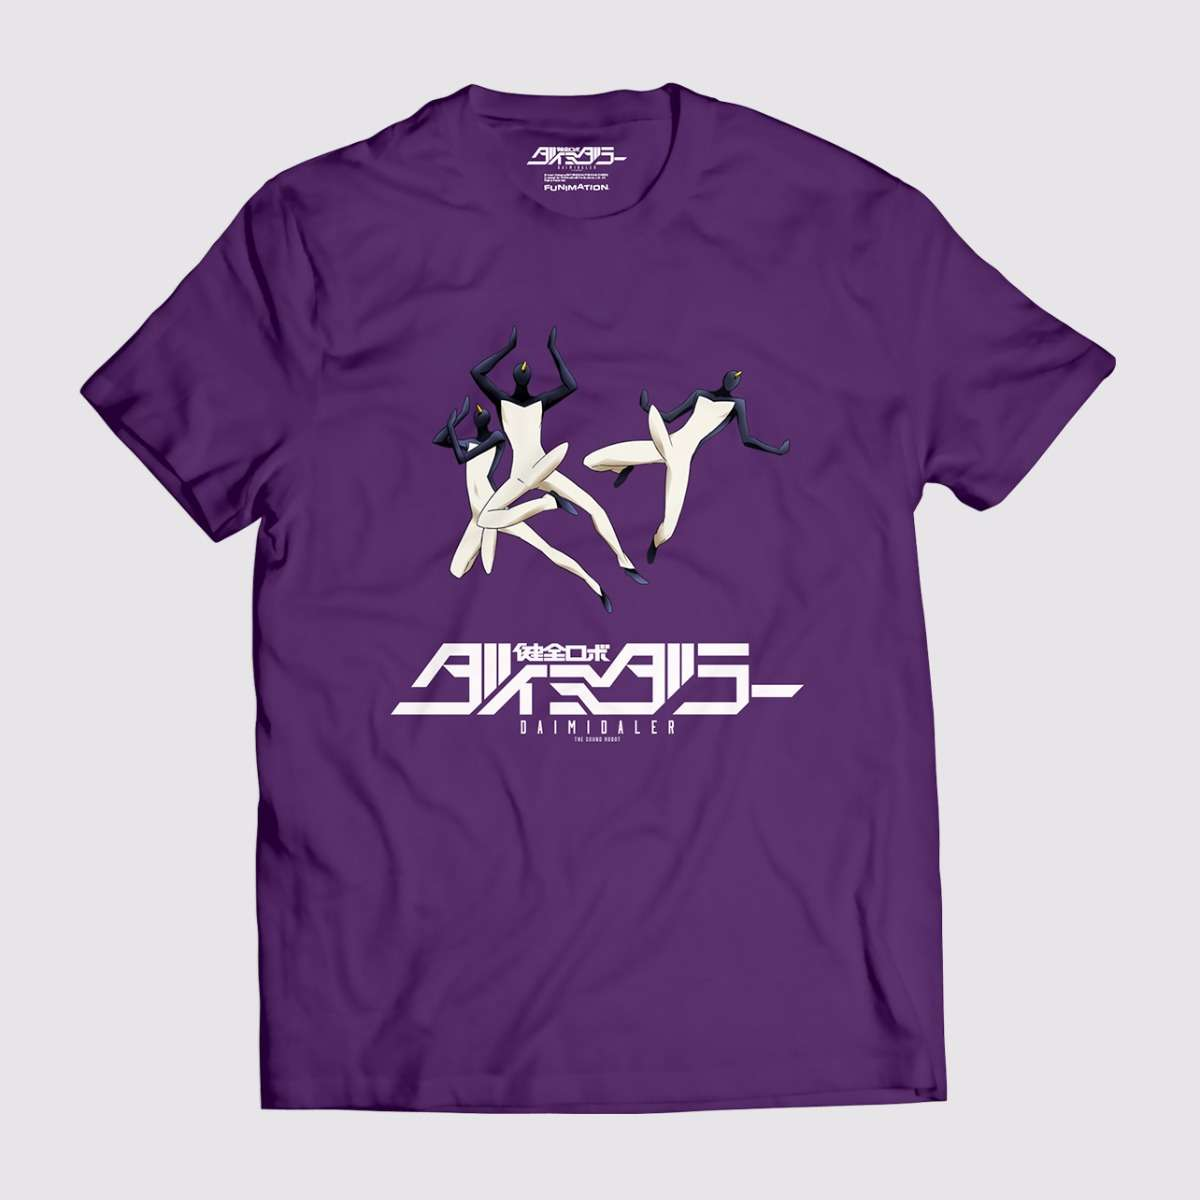 T-shirt - Purple apparel